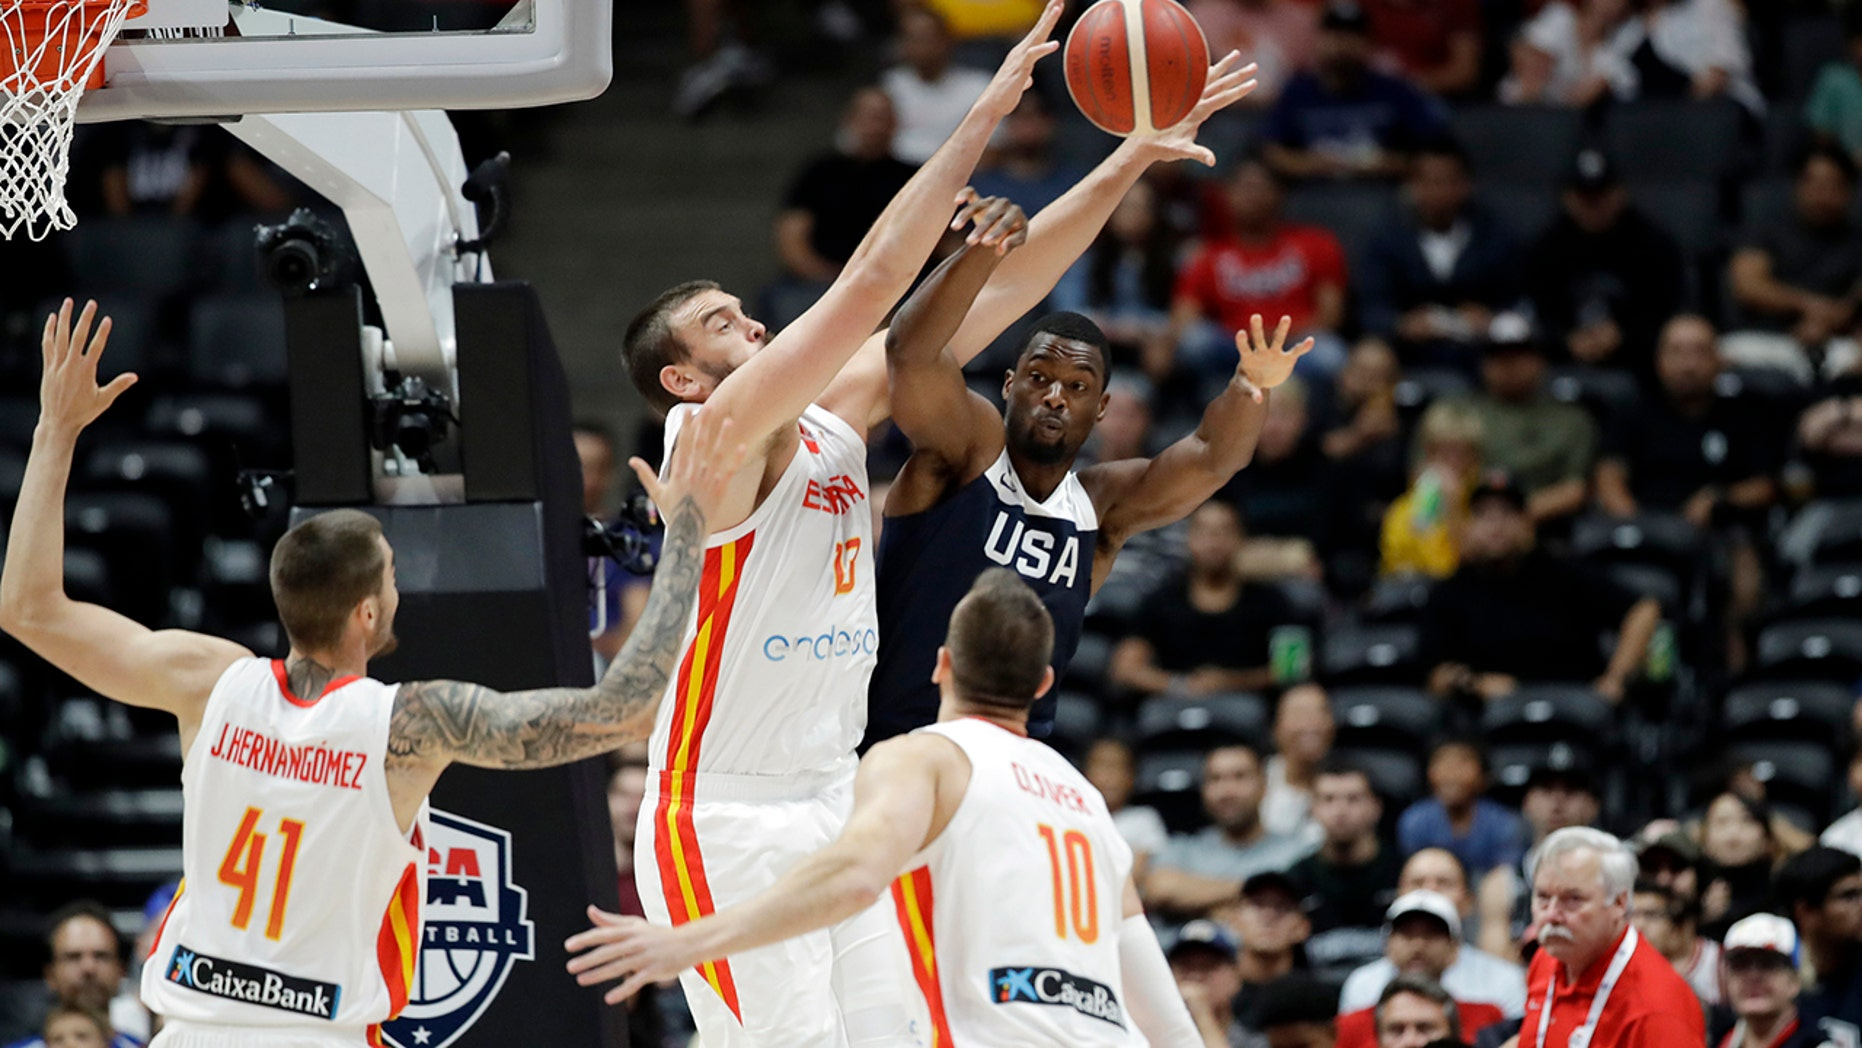 United States' Harrison Barnes, center right, is defended by Spain's Marc Gasol, center left, during the first half of an exhibition basketball game Friday, Aug. 16, 2019, in Anaheim, Calif. (AP Photo/Marcio Jose Sanchez)